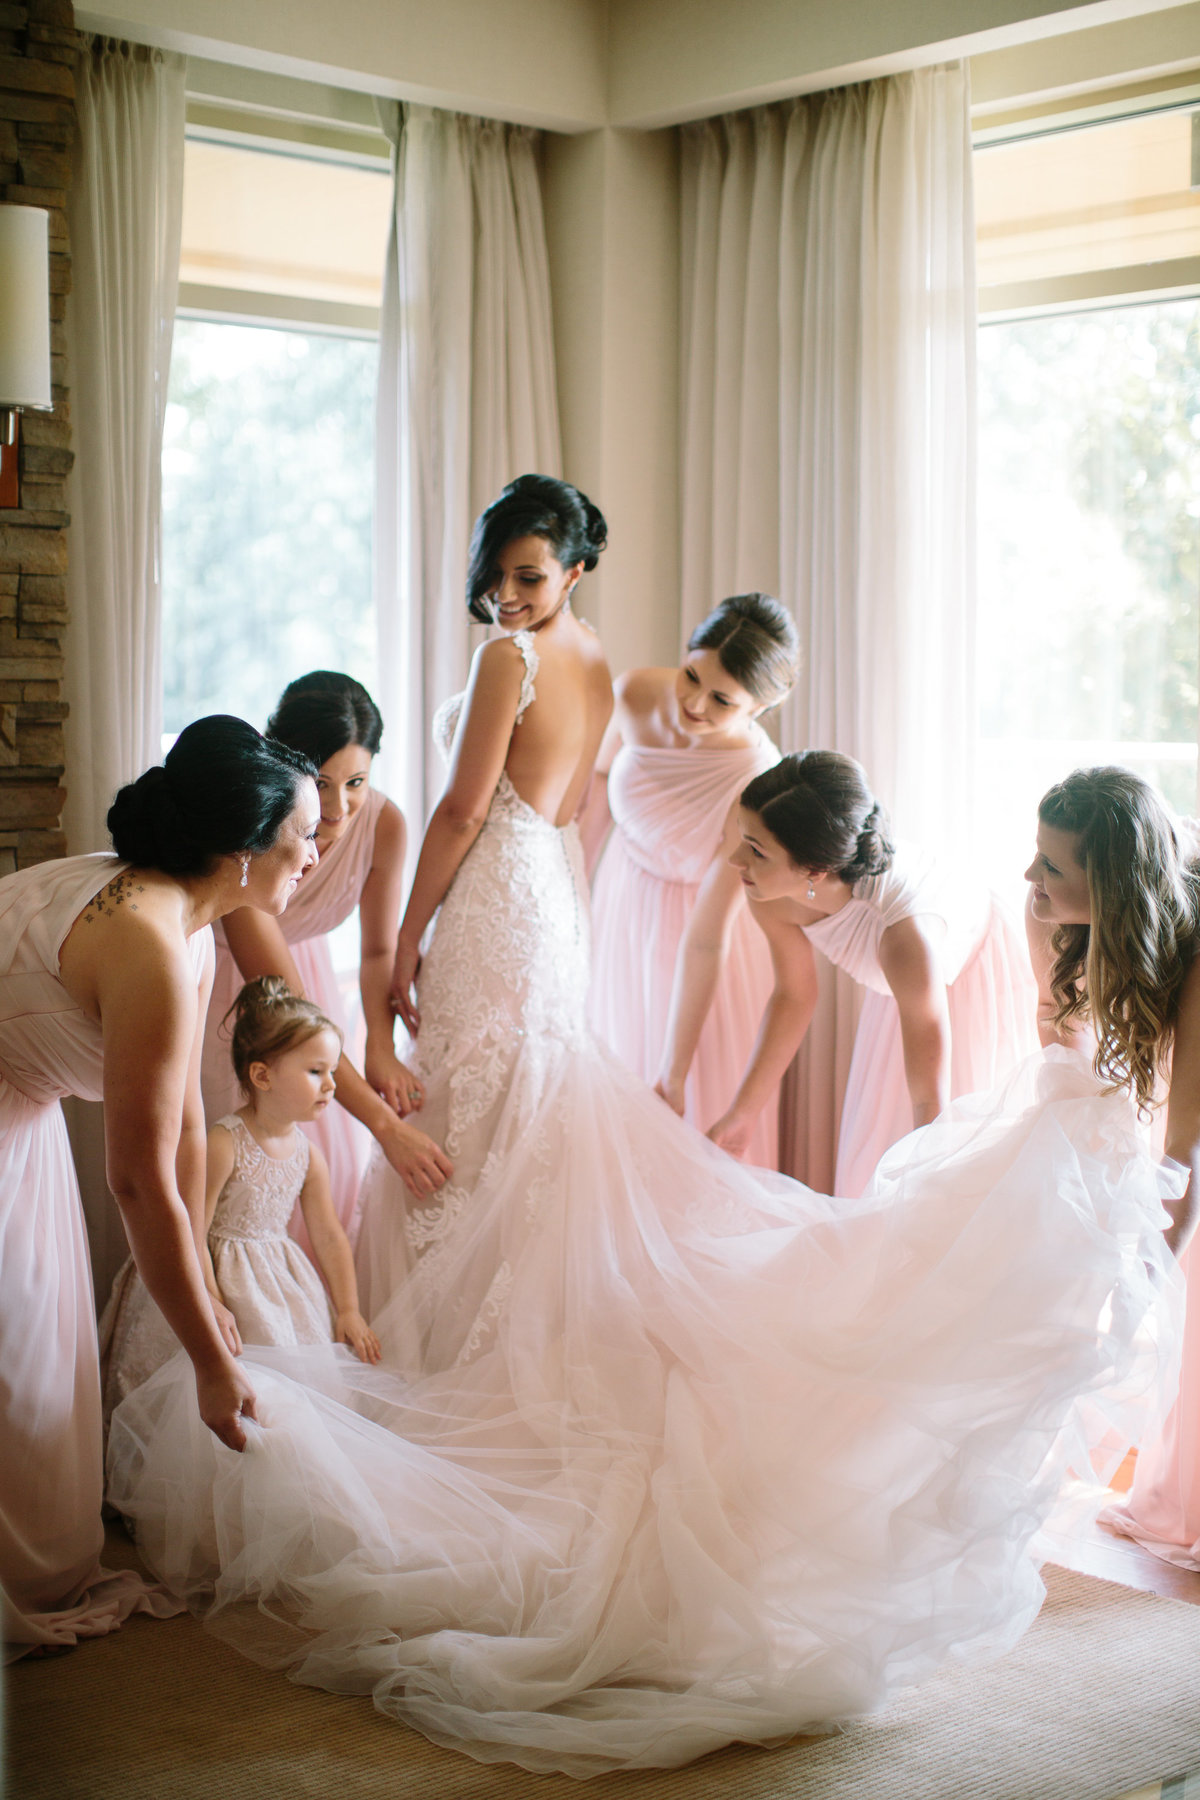 thelodge-turningstone-lodge-turning-stone-turningstonewedding-bride-bridesmaids-preparation-gettingready